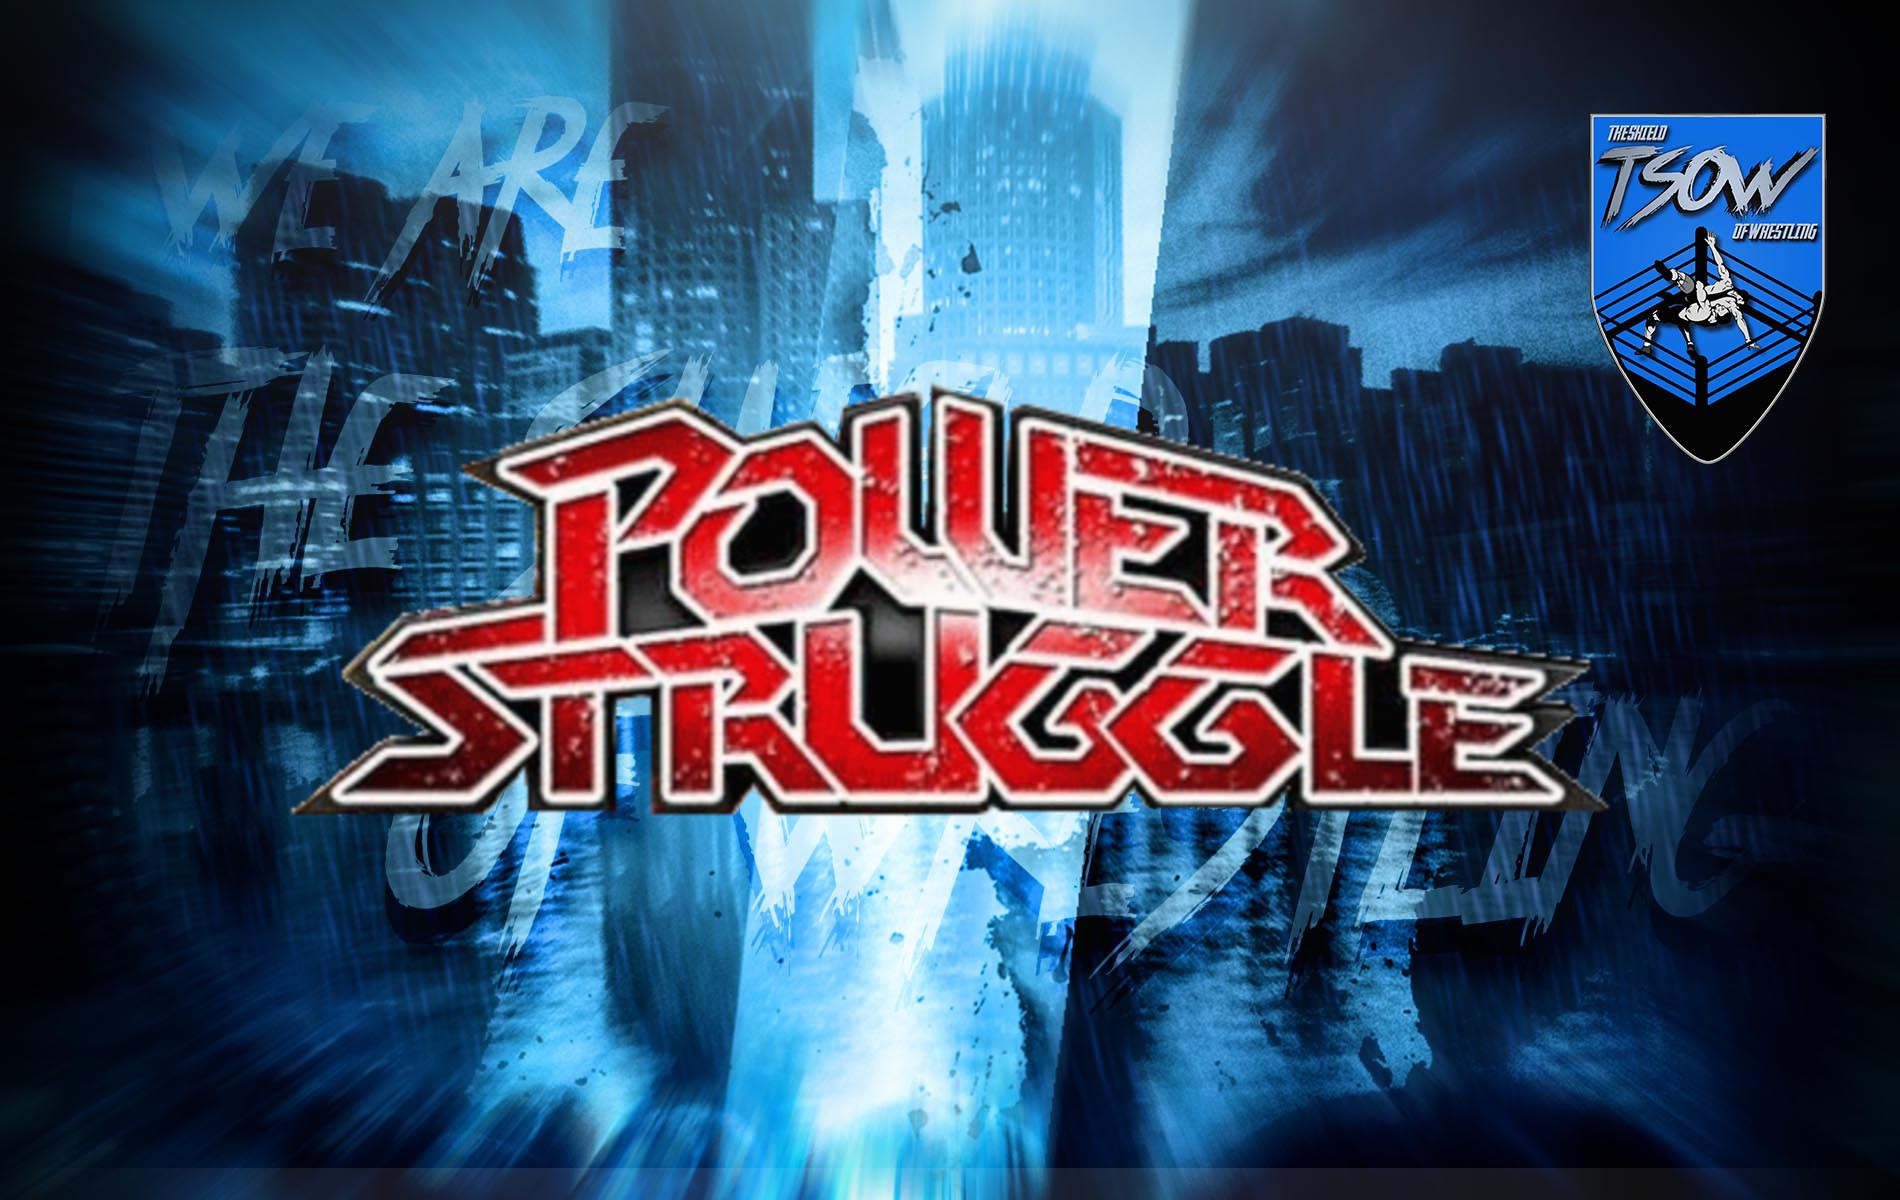 Risultati NJPW Road To Power Struggle 2020 - Day 3